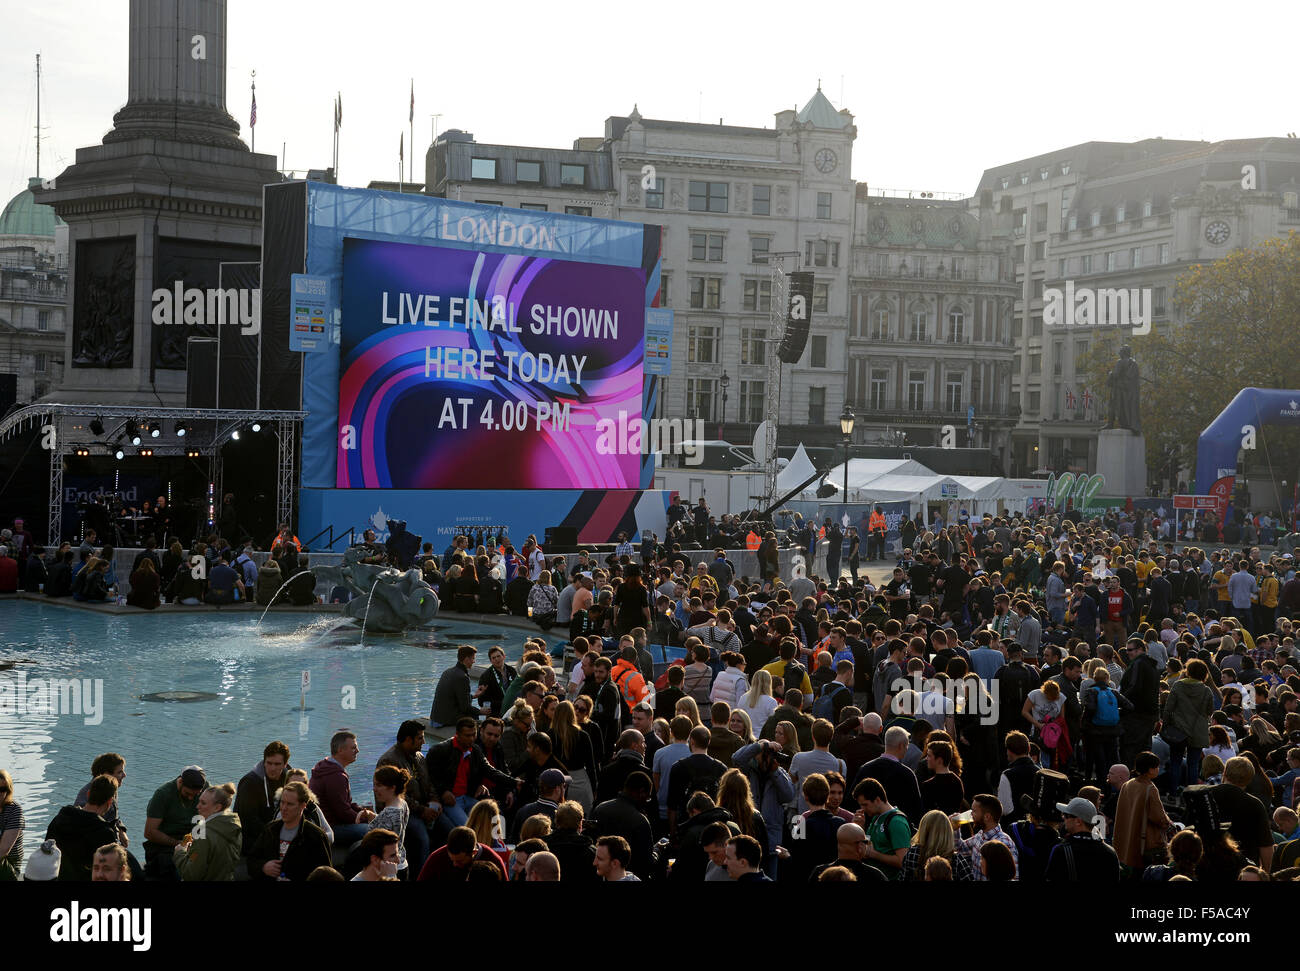 Rugby World Cup final being shown live on big screens in Trafalgar Square, London, Britain, UK - Stock Image